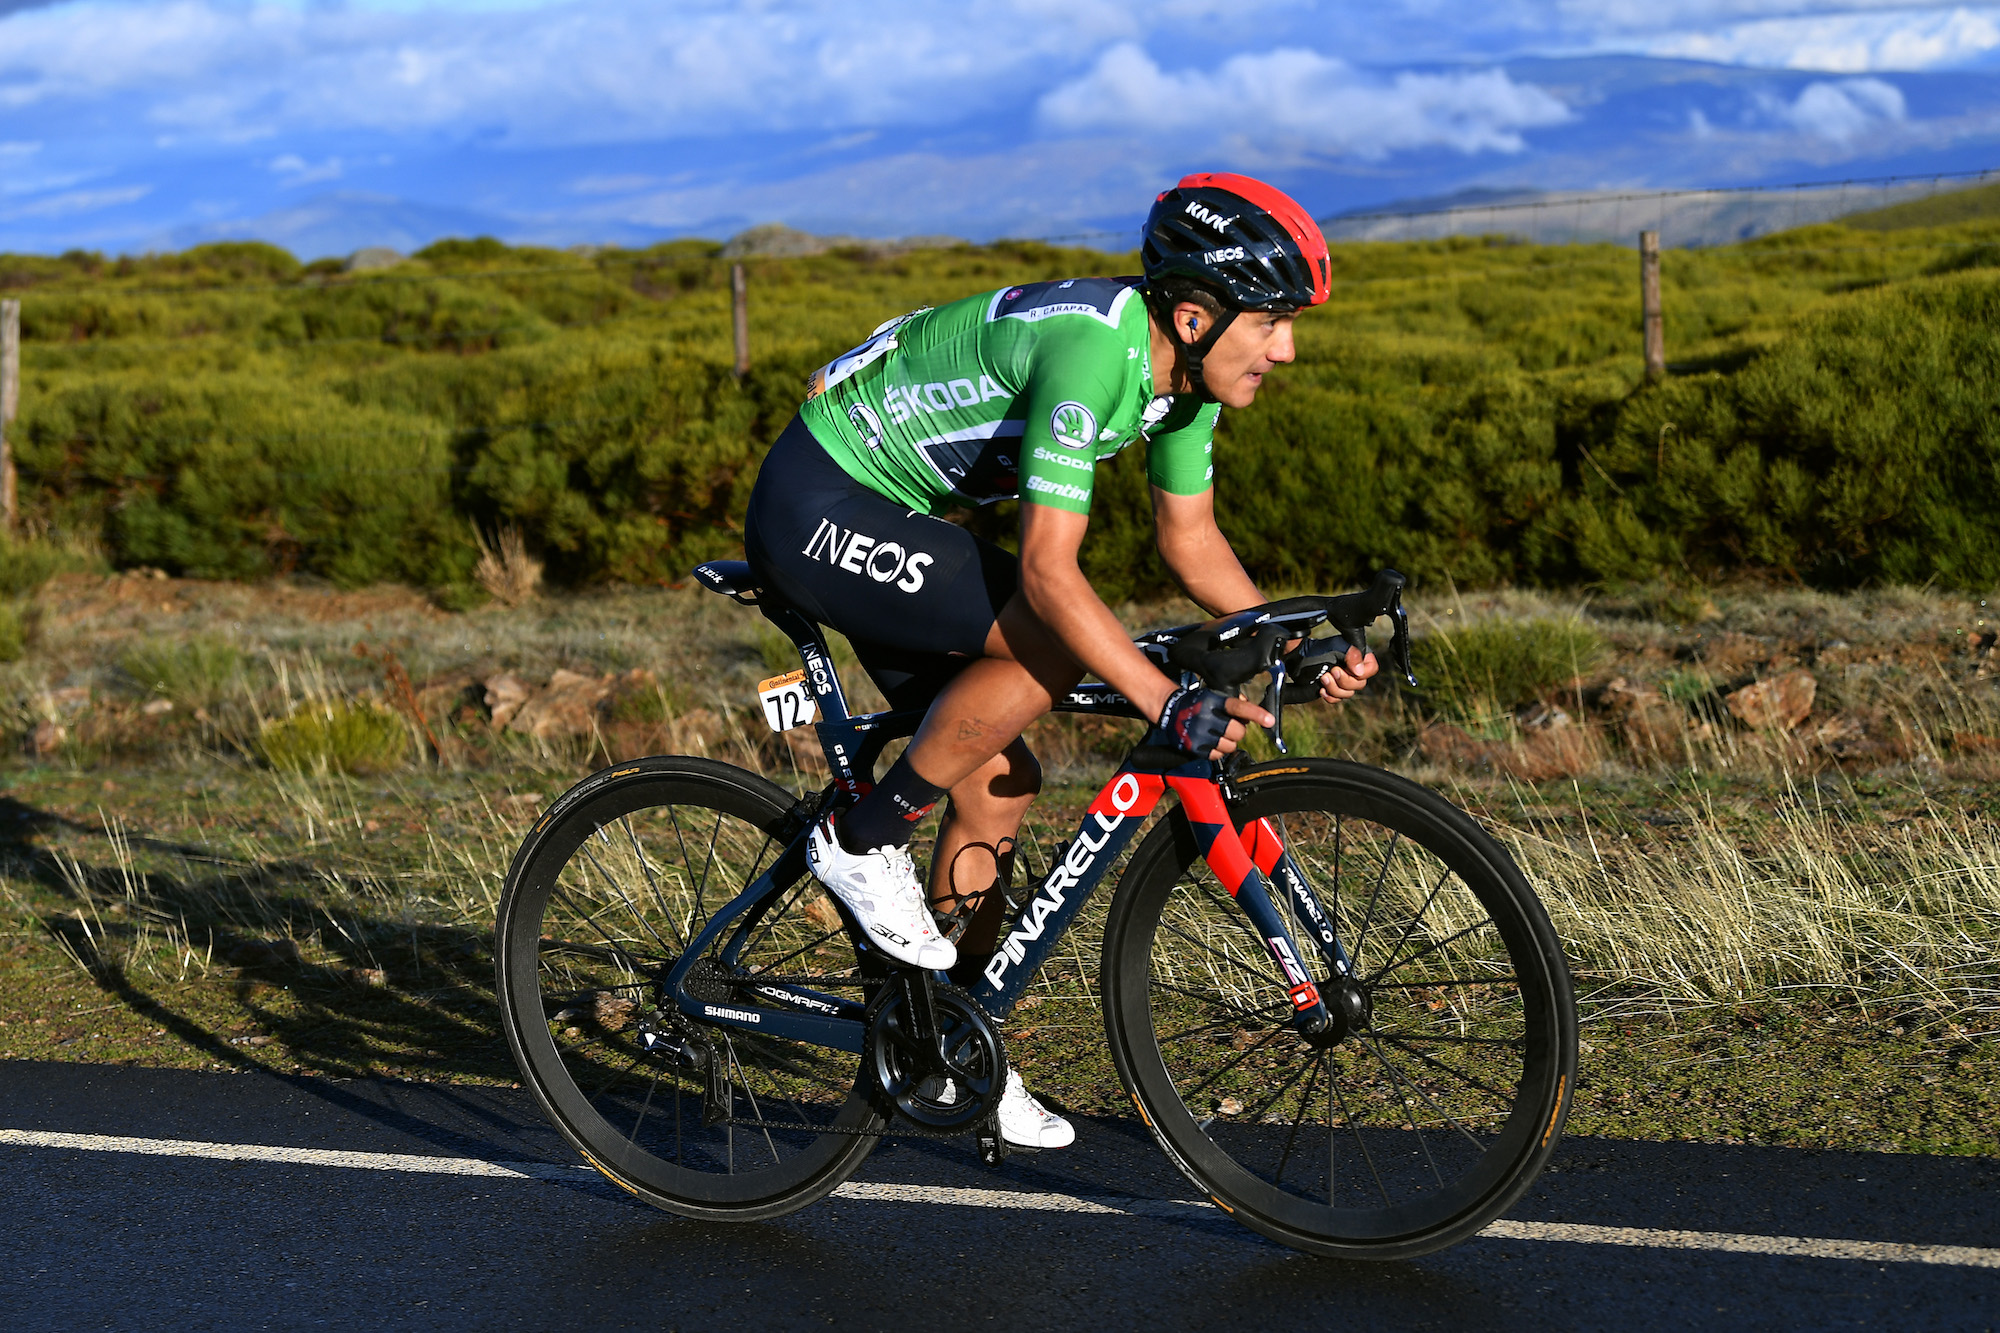 Five talking points from stage 17 of the Vuelta a España ...